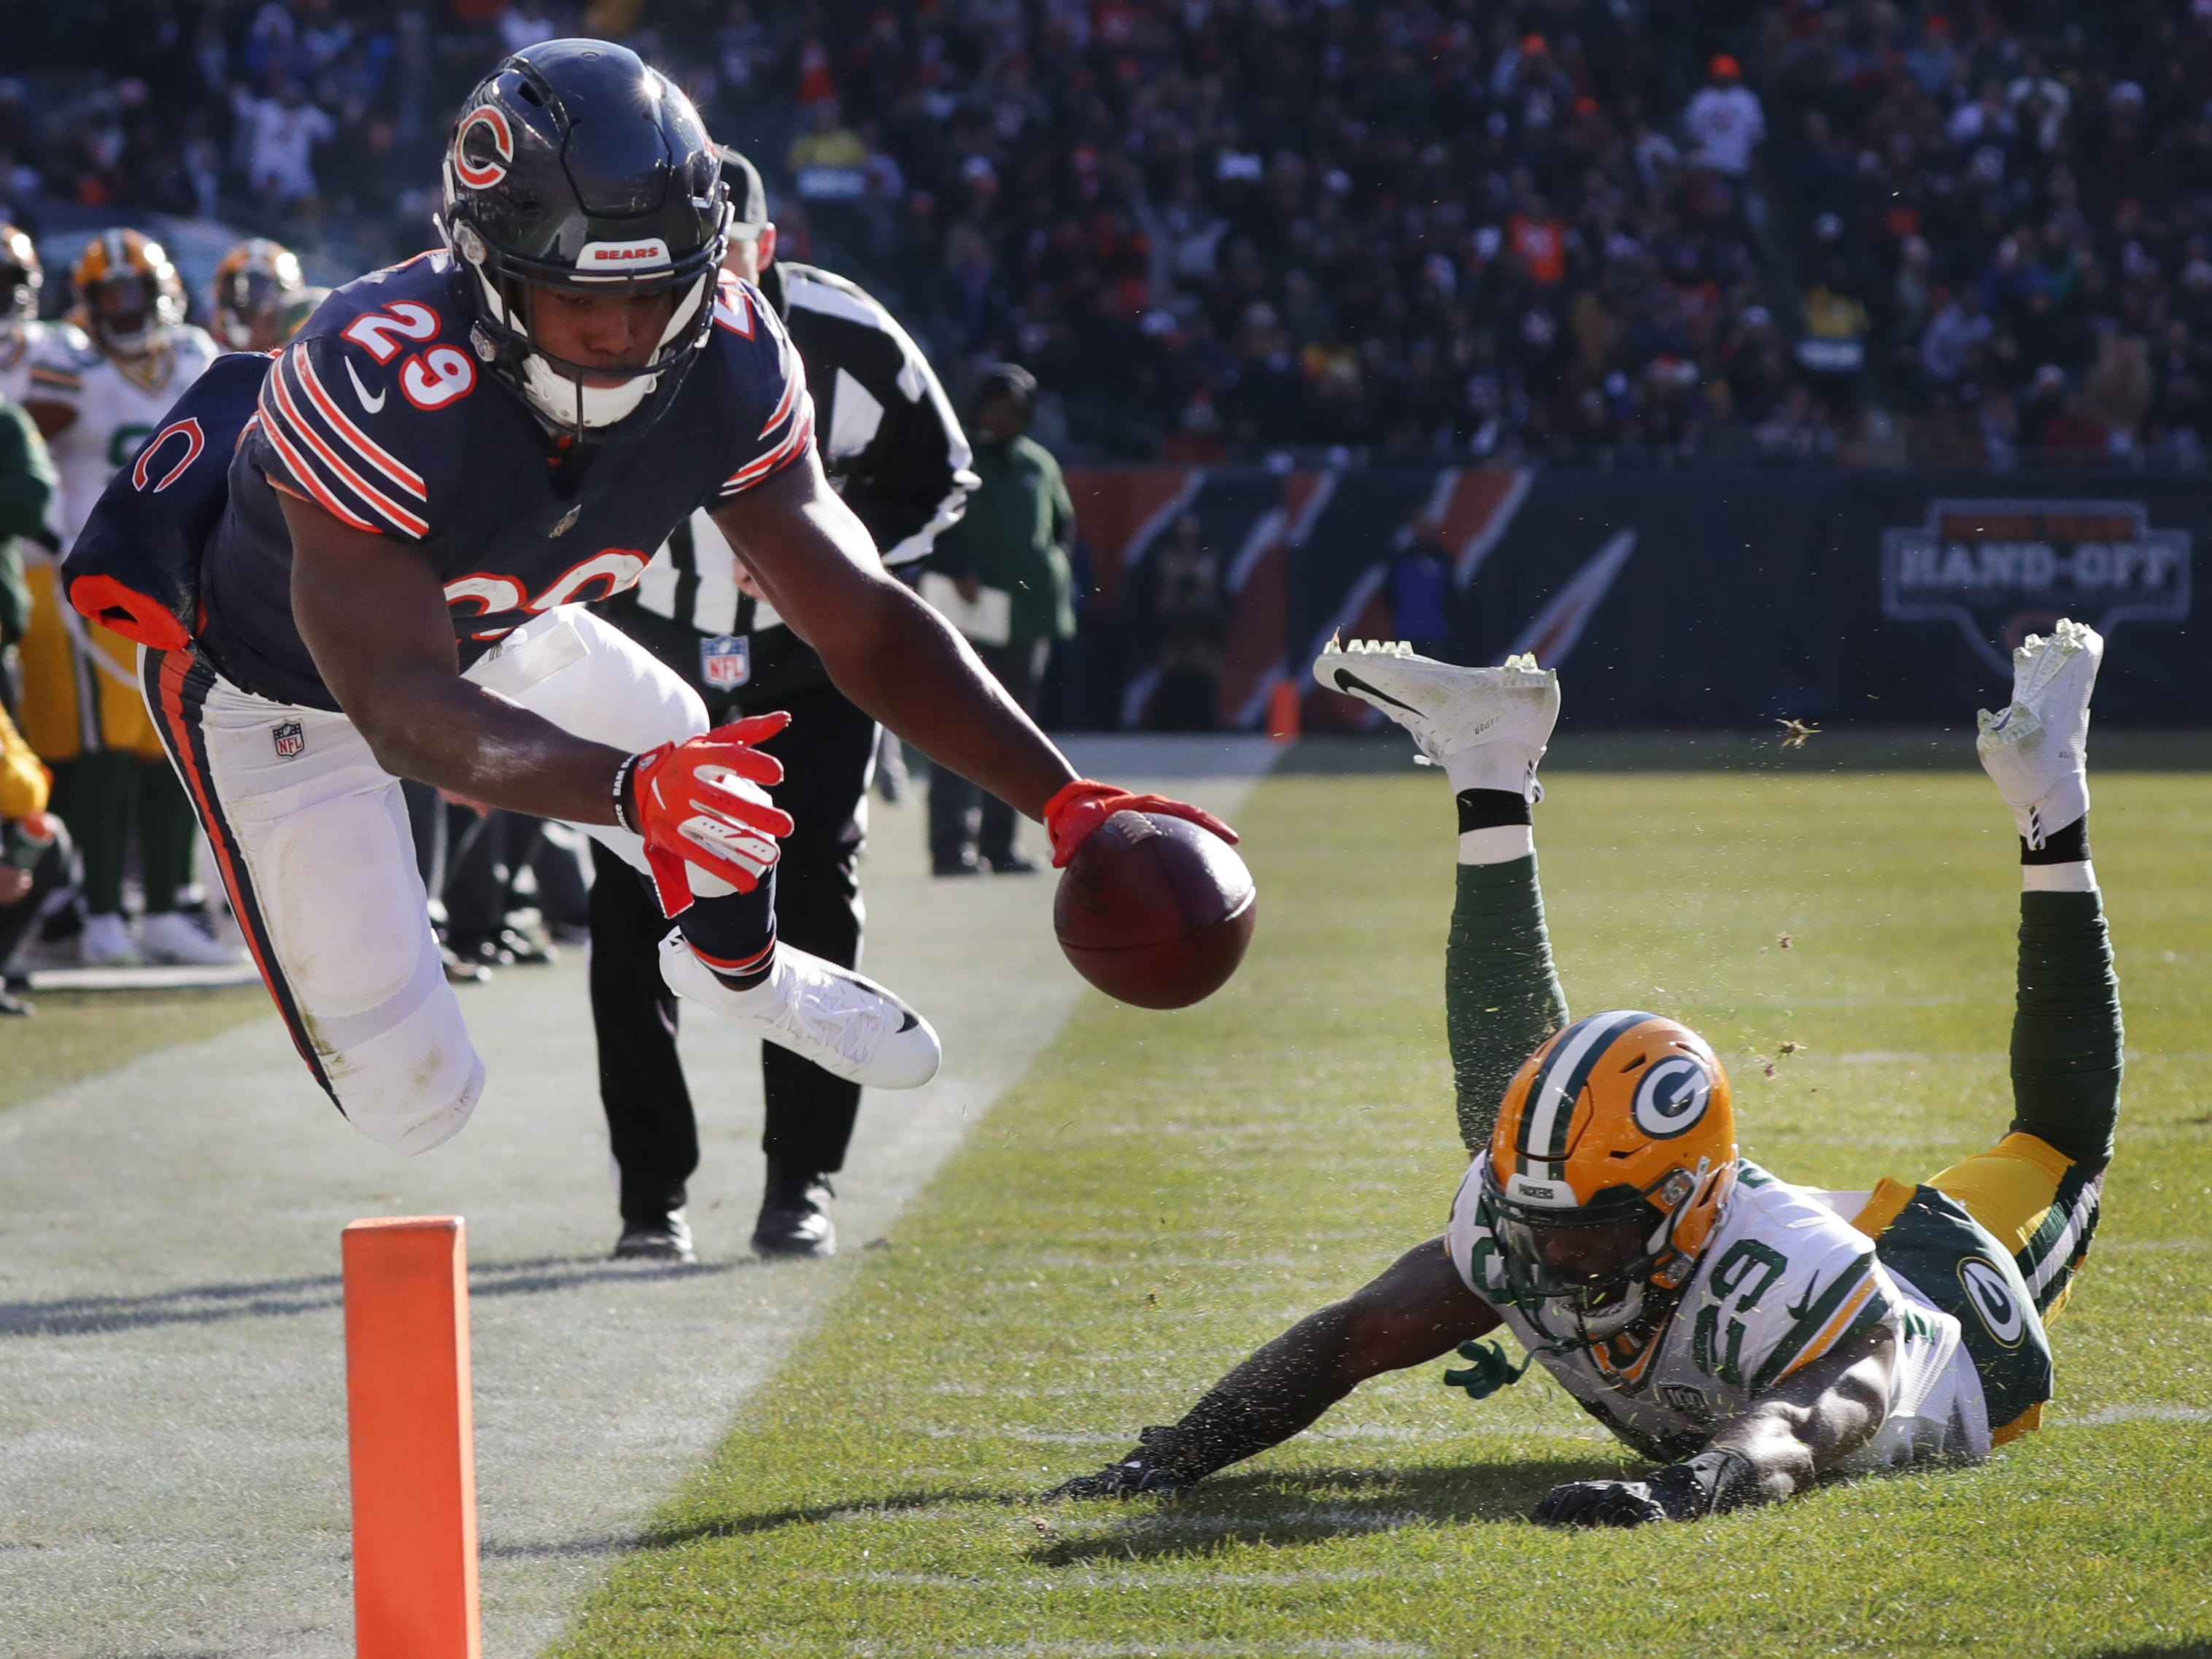 Chicago Bears running back Tarik Cohen (29) leaves Green Bay Packers strong safety Kentrell Brice (29) is his wake while scoring a touchdown on a 12-yard reception during the second quarter of their game Sunday, December 25, 2018 at Soldier Field in Chicago, Ill.  MARK HOFFMAN/MILWAUKEE JOURNAL SENTINEL